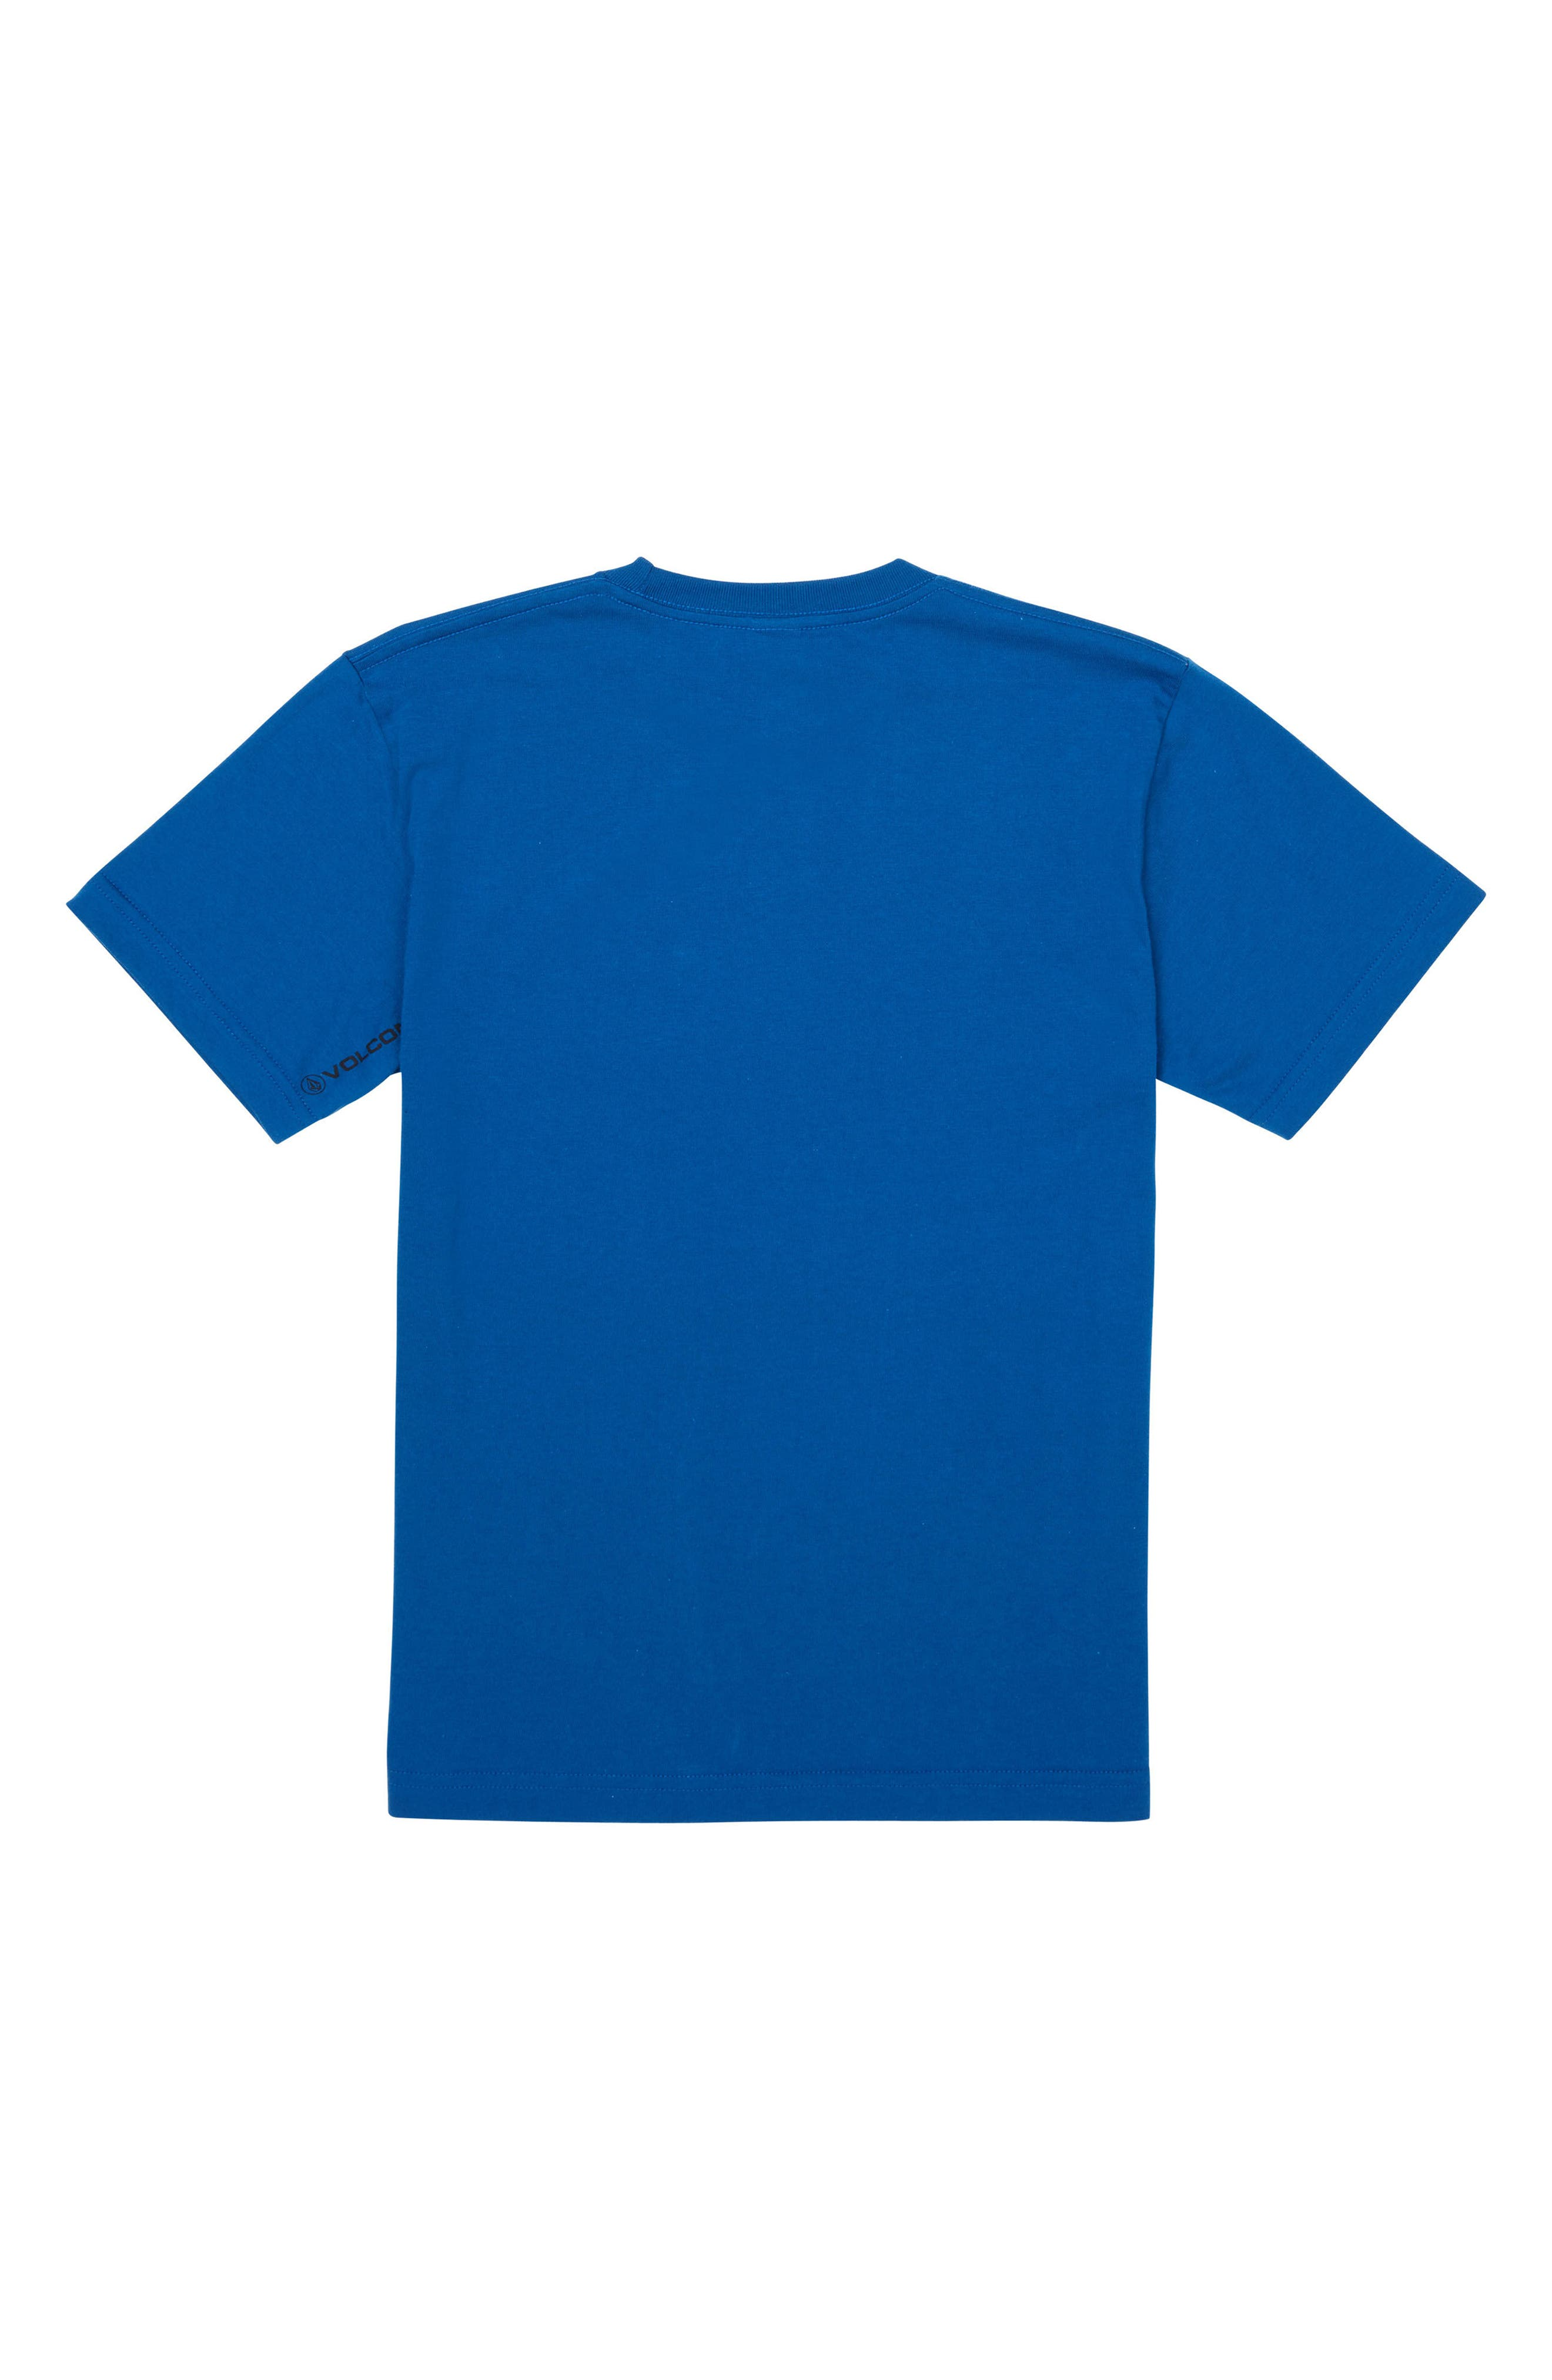 Glitchy Graphic T-Shirt,                             Alternate thumbnail 2, color,                             421